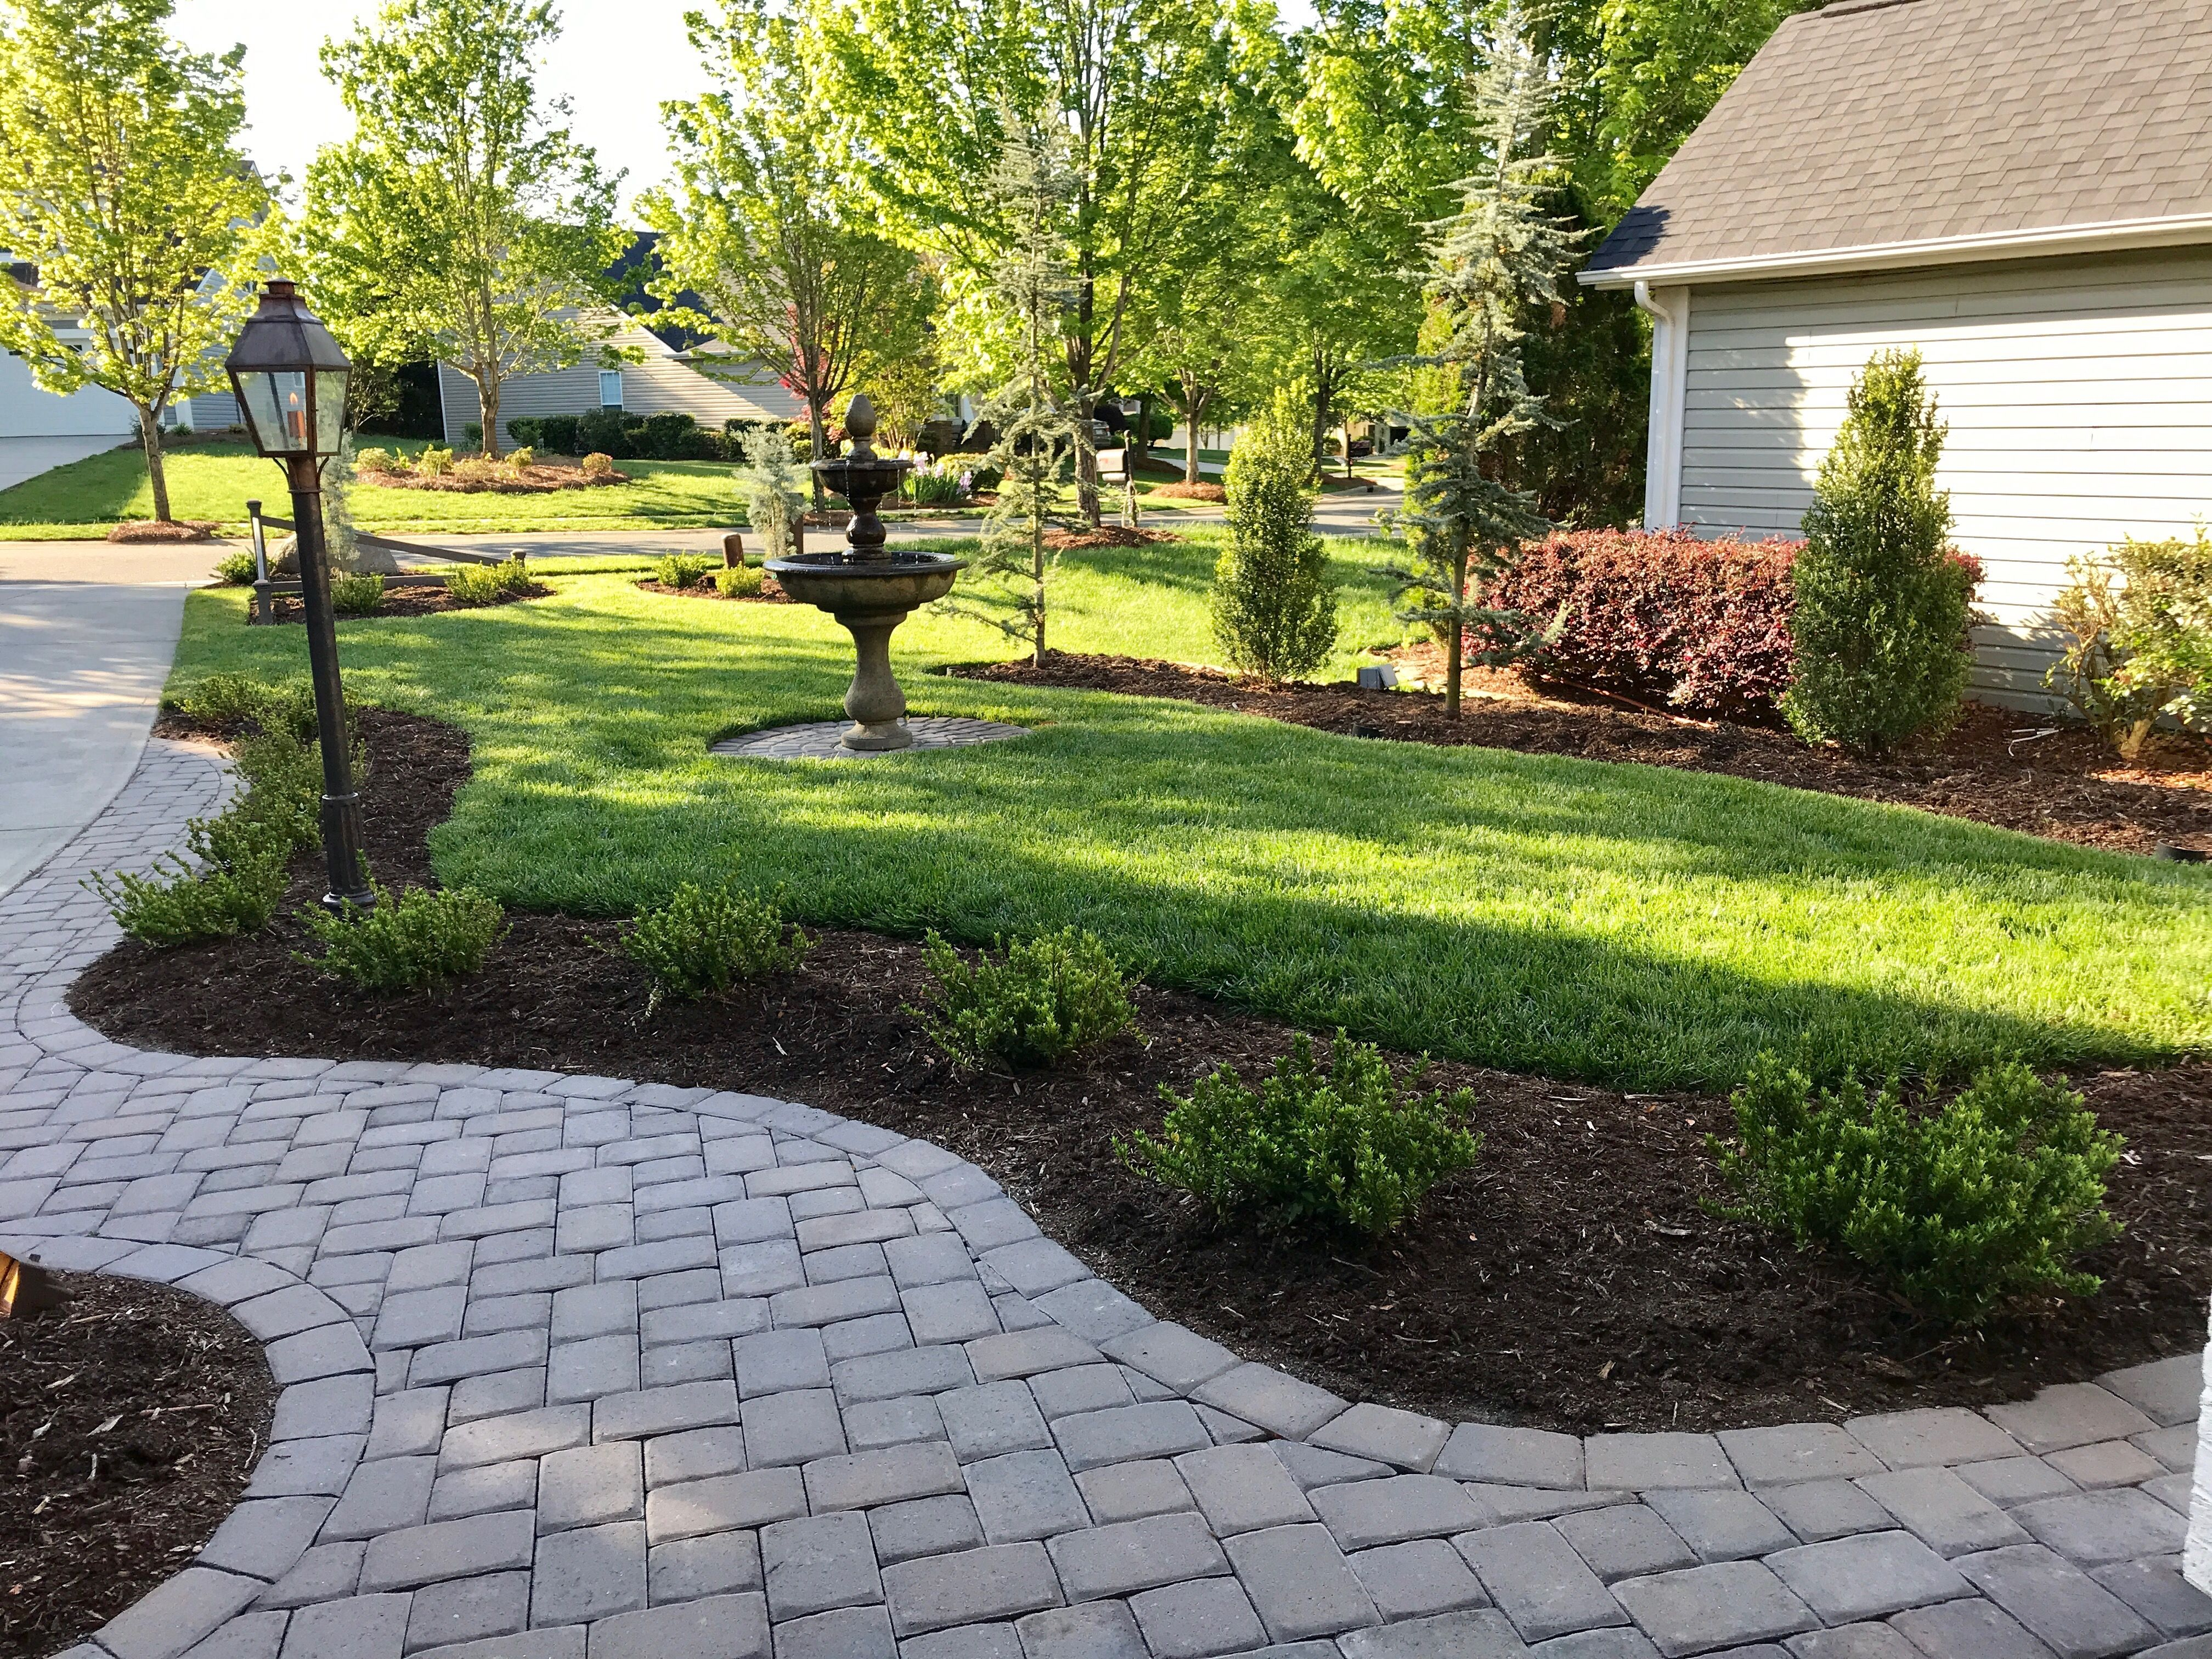 Simple But Elegant Landscape Design For The For A Small Front Yard